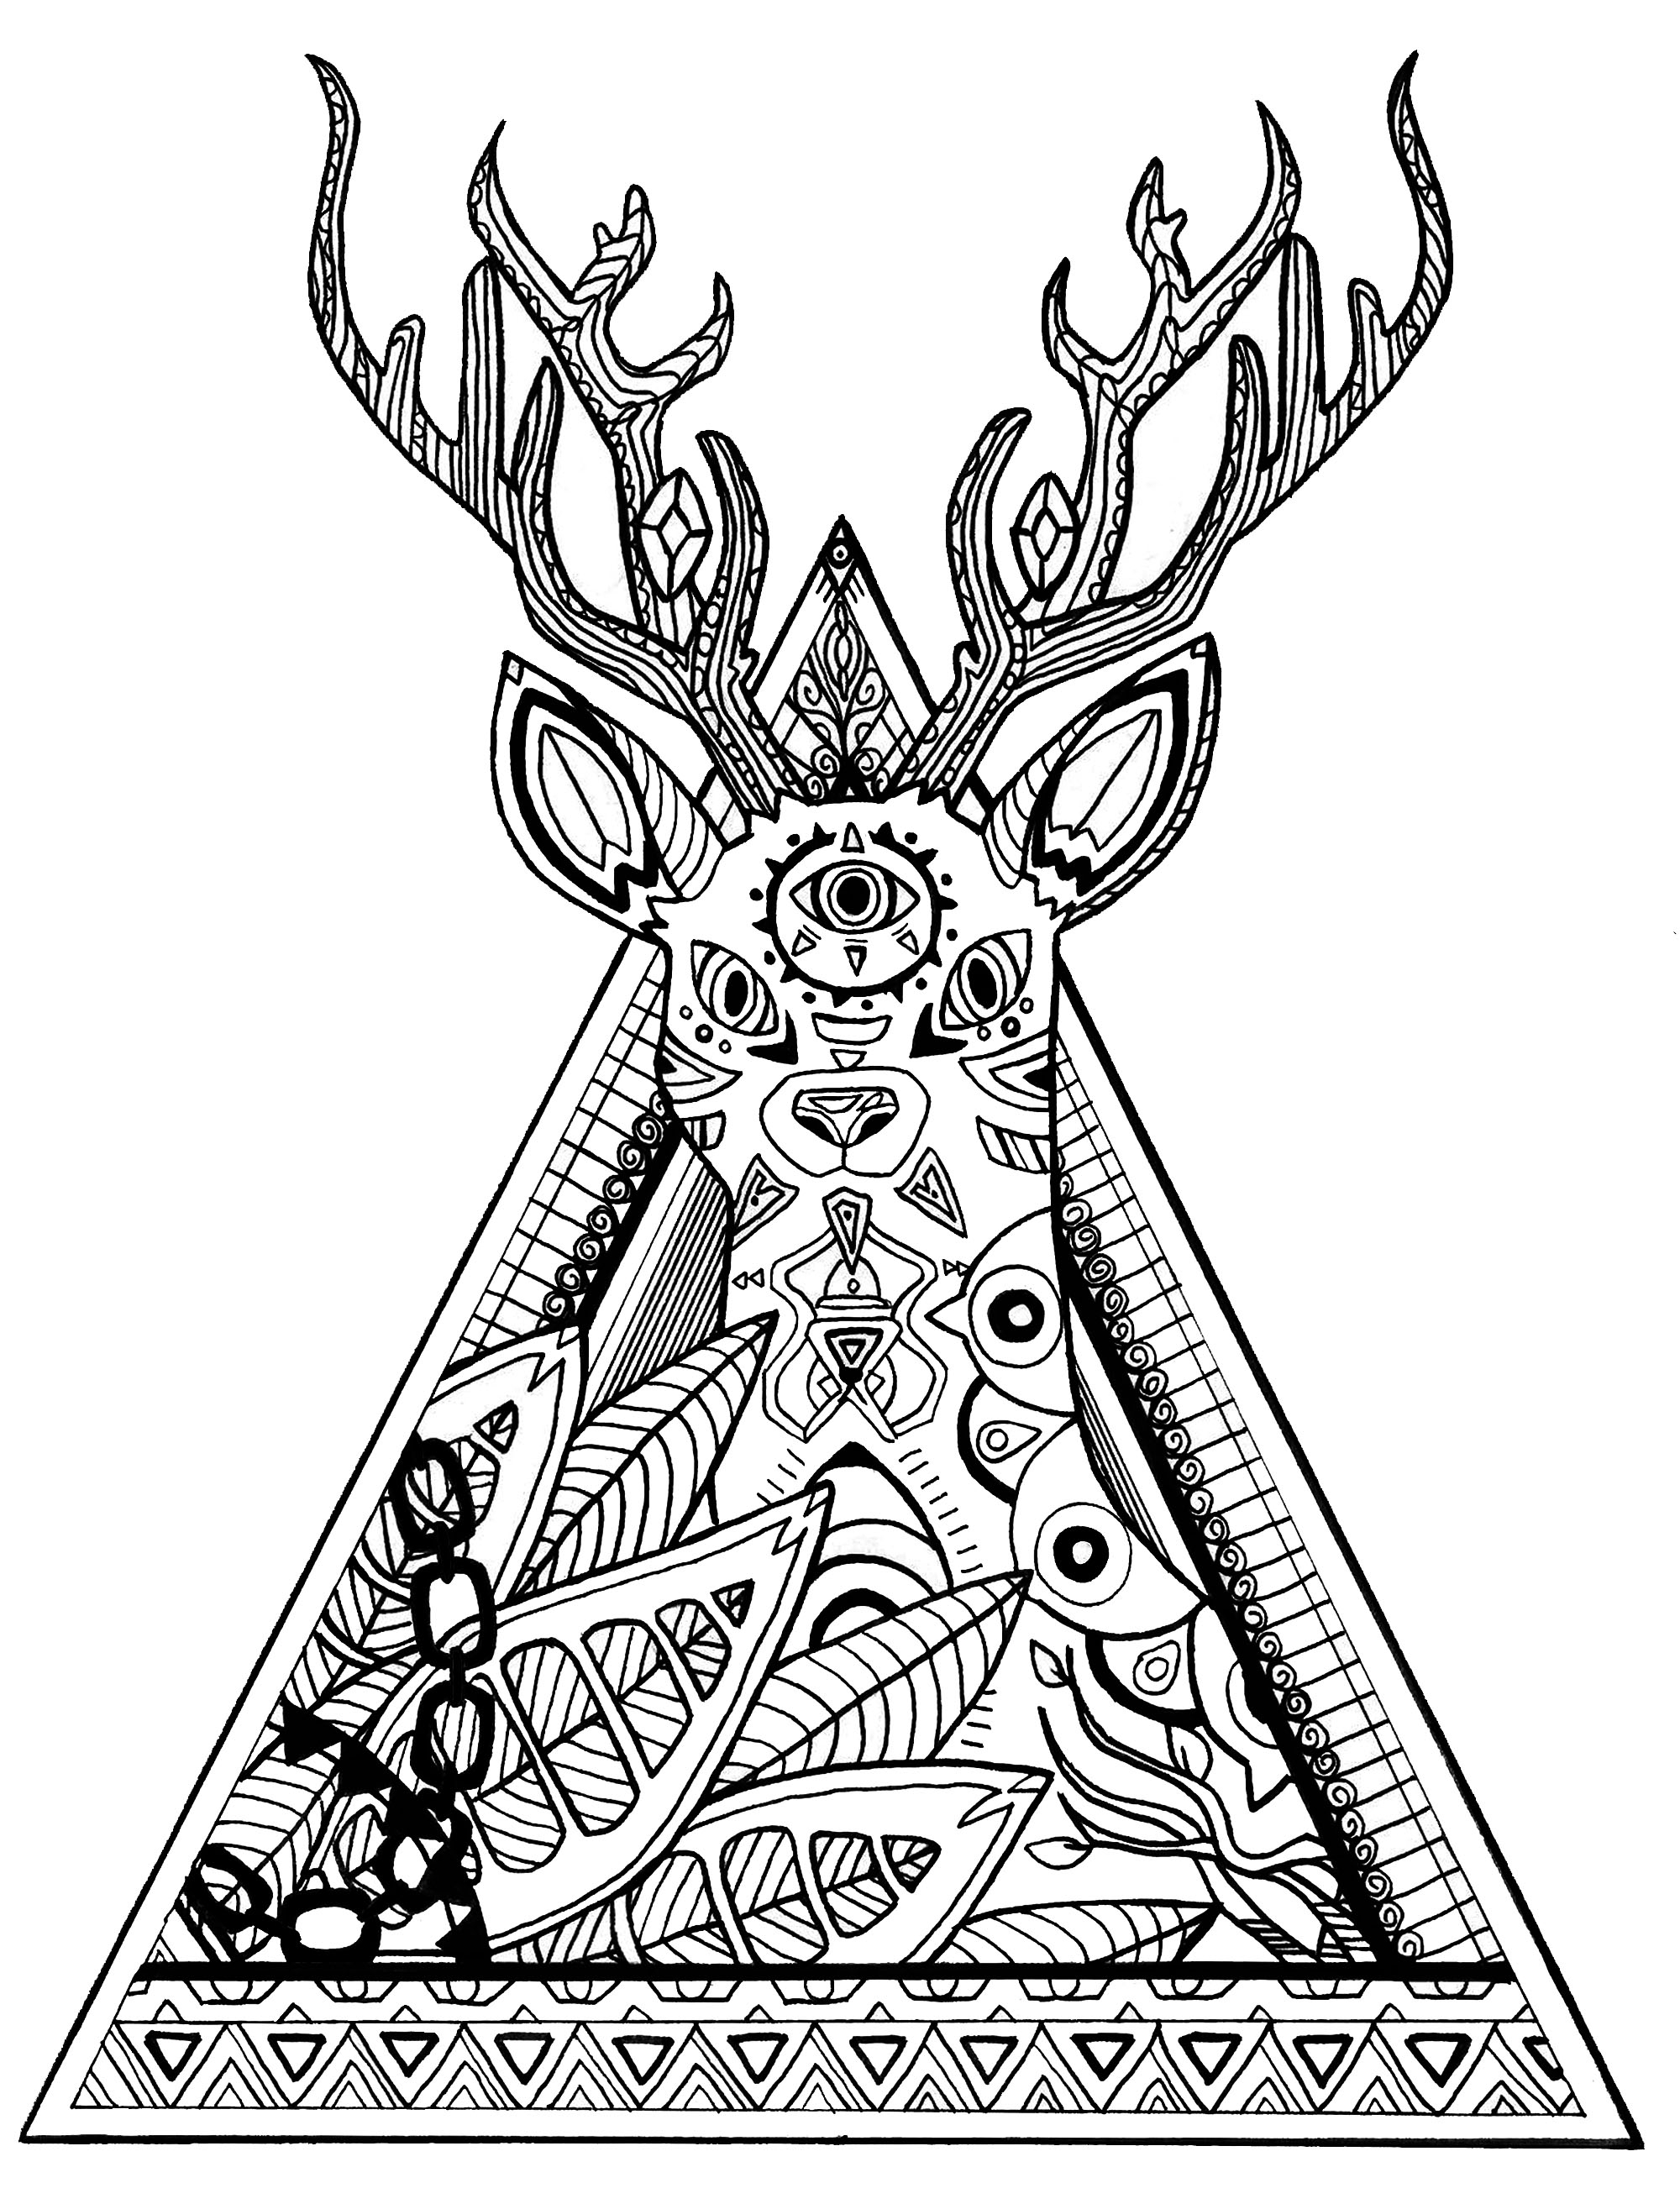 Deer Coloring Pages Deer In A Triangle Deers Adult Coloring Pages